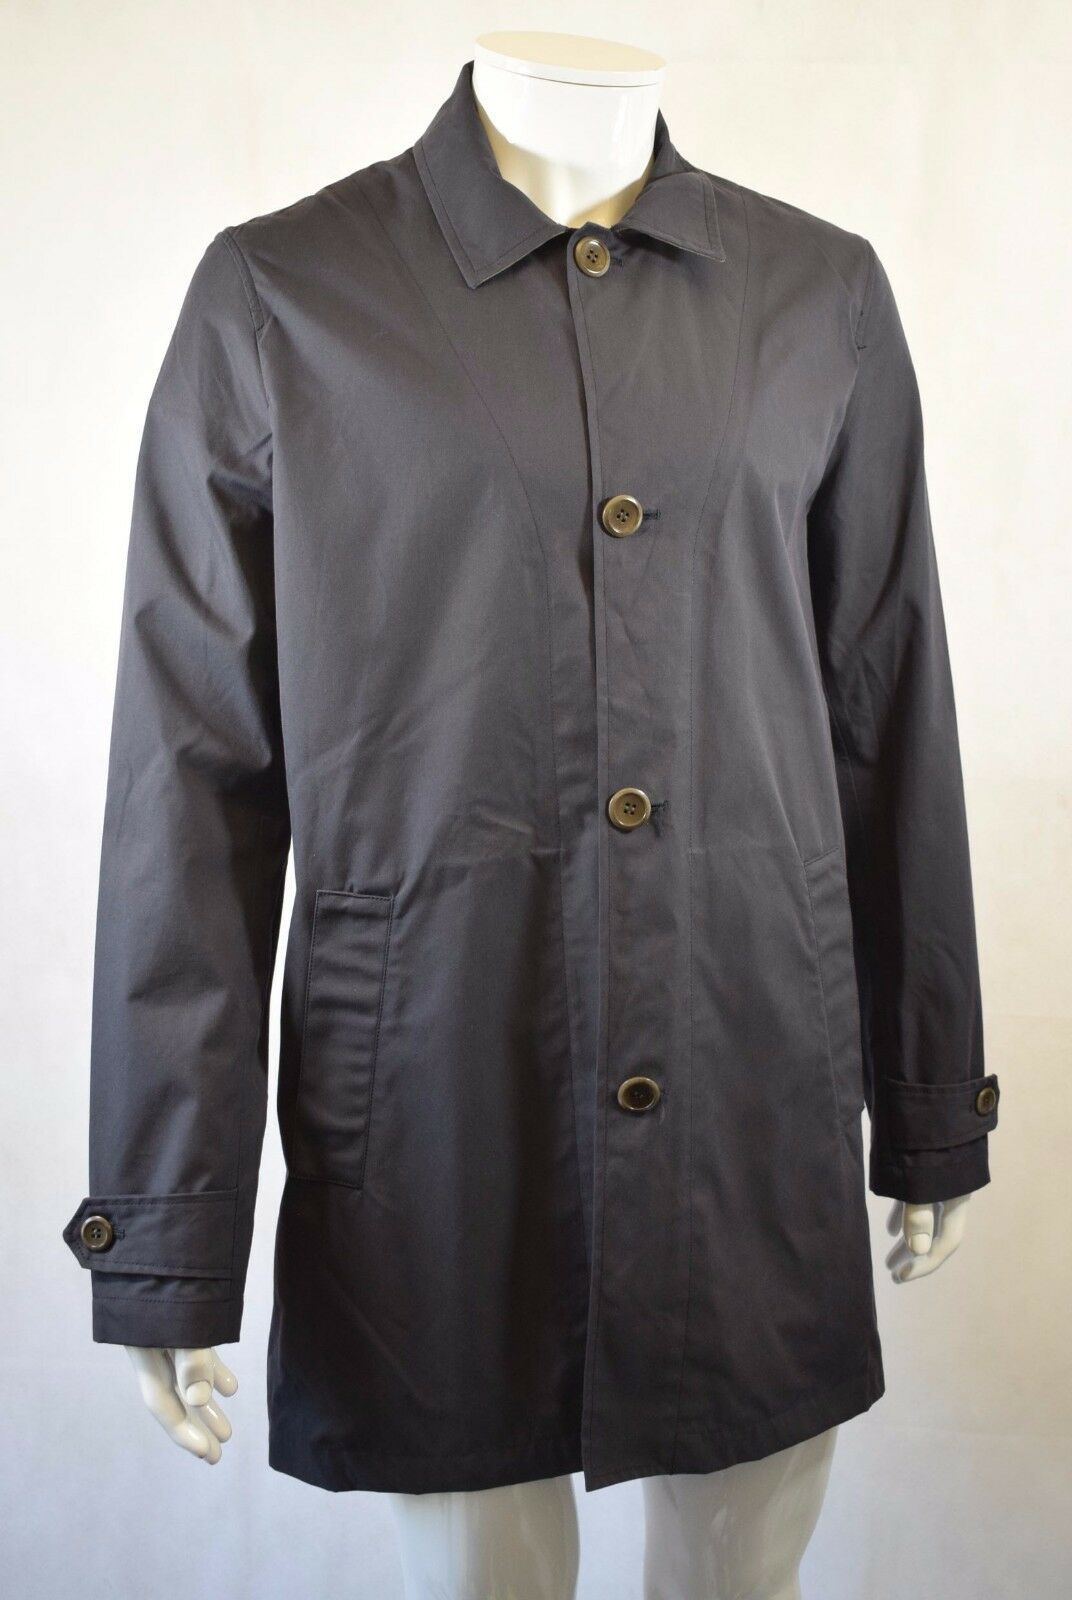 Bnwt John Lewis & Co Made in England Mac In Navy - Size L - RRP